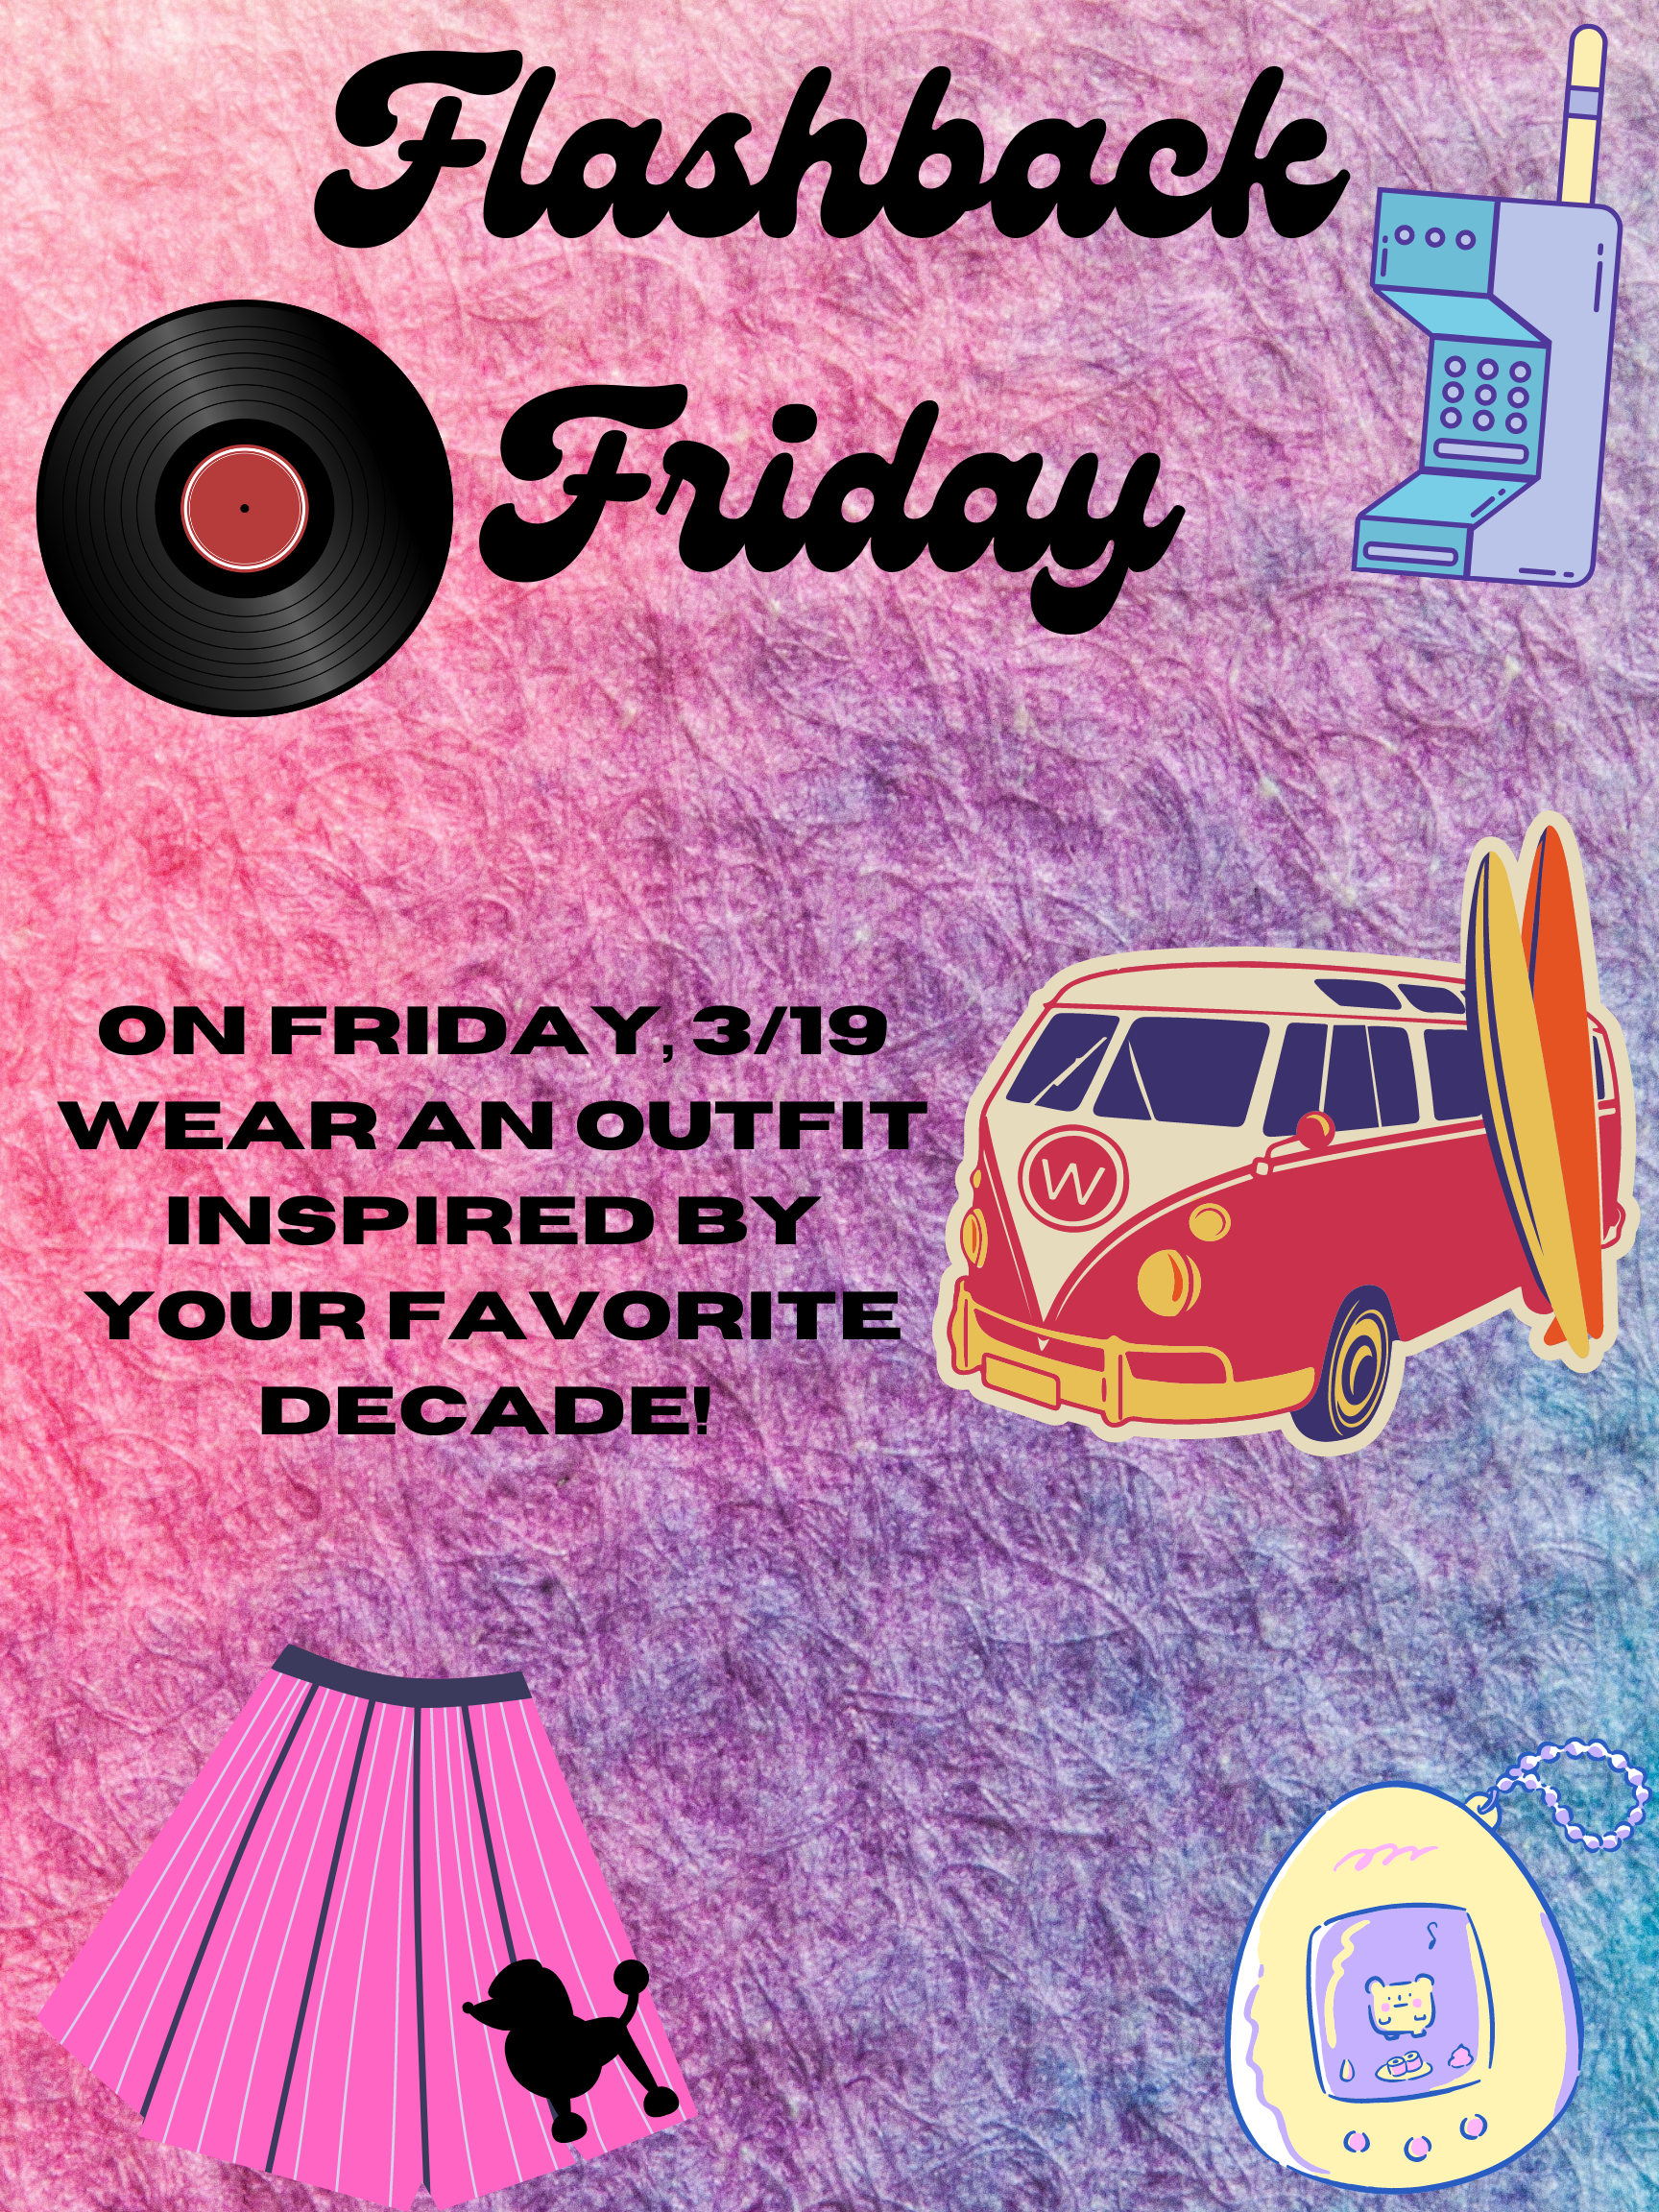 Fri 03/19: Wear an outfit inspired by your favorite decade.